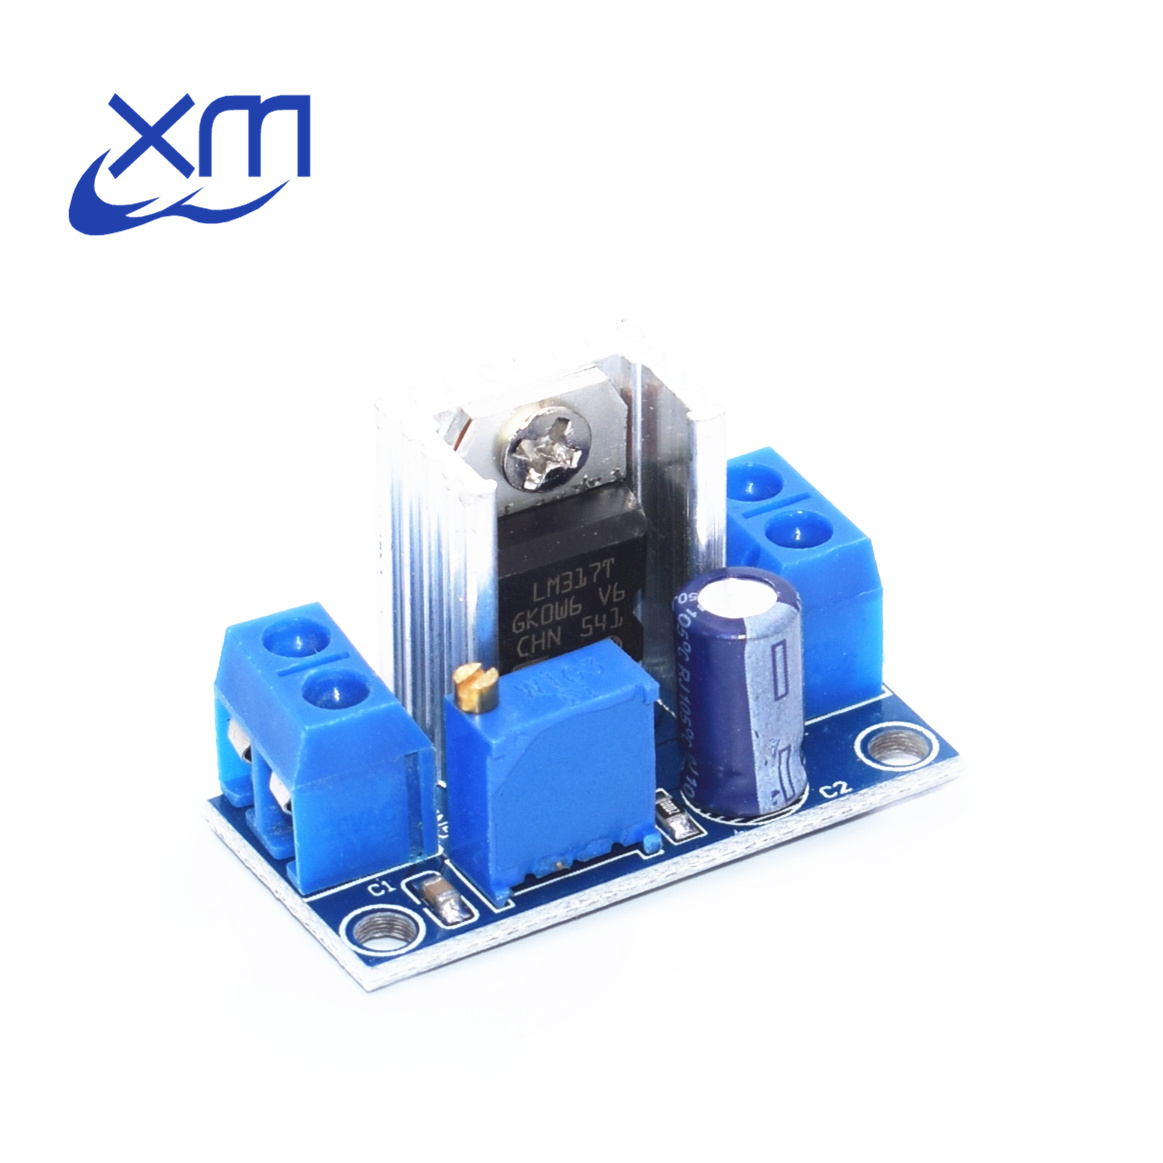 1pcs Lm317 Adjustable Voltage Regulator Power Supply Dc Converter Buck Step Down Circuit Board Module Linear B24 In Integrated Circuits From